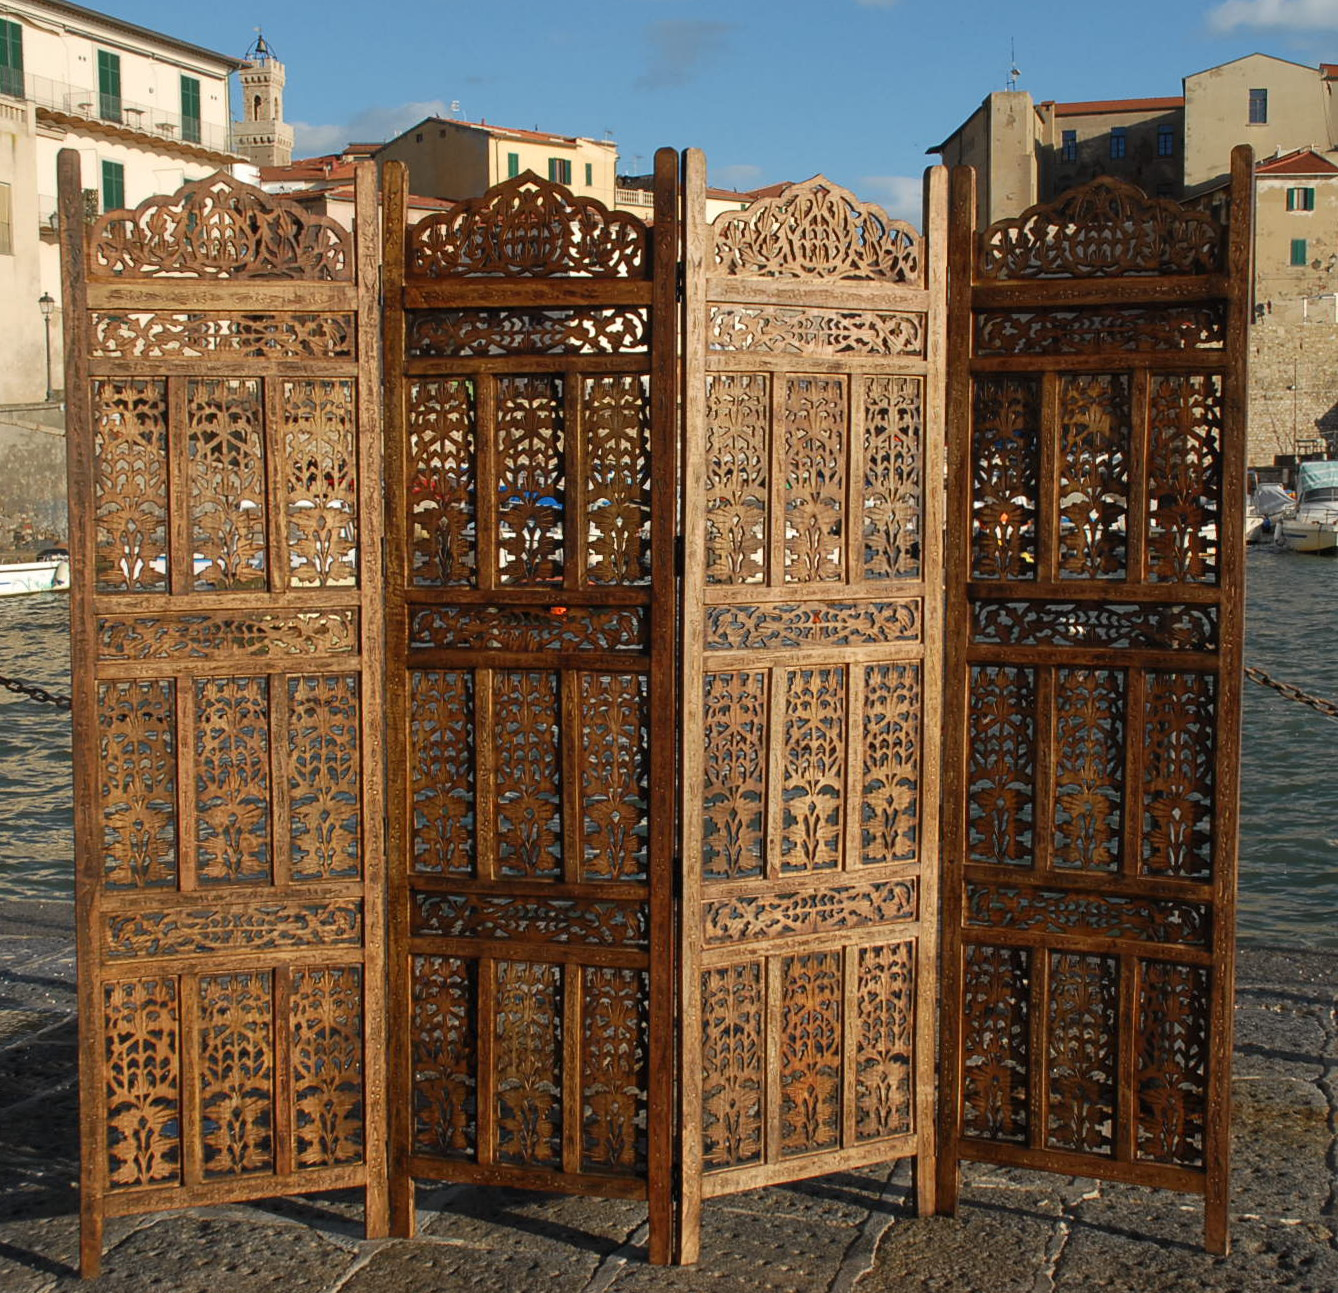 Parvent Paravent 4 Panel Indian Hand Carved Wooden Screen Room